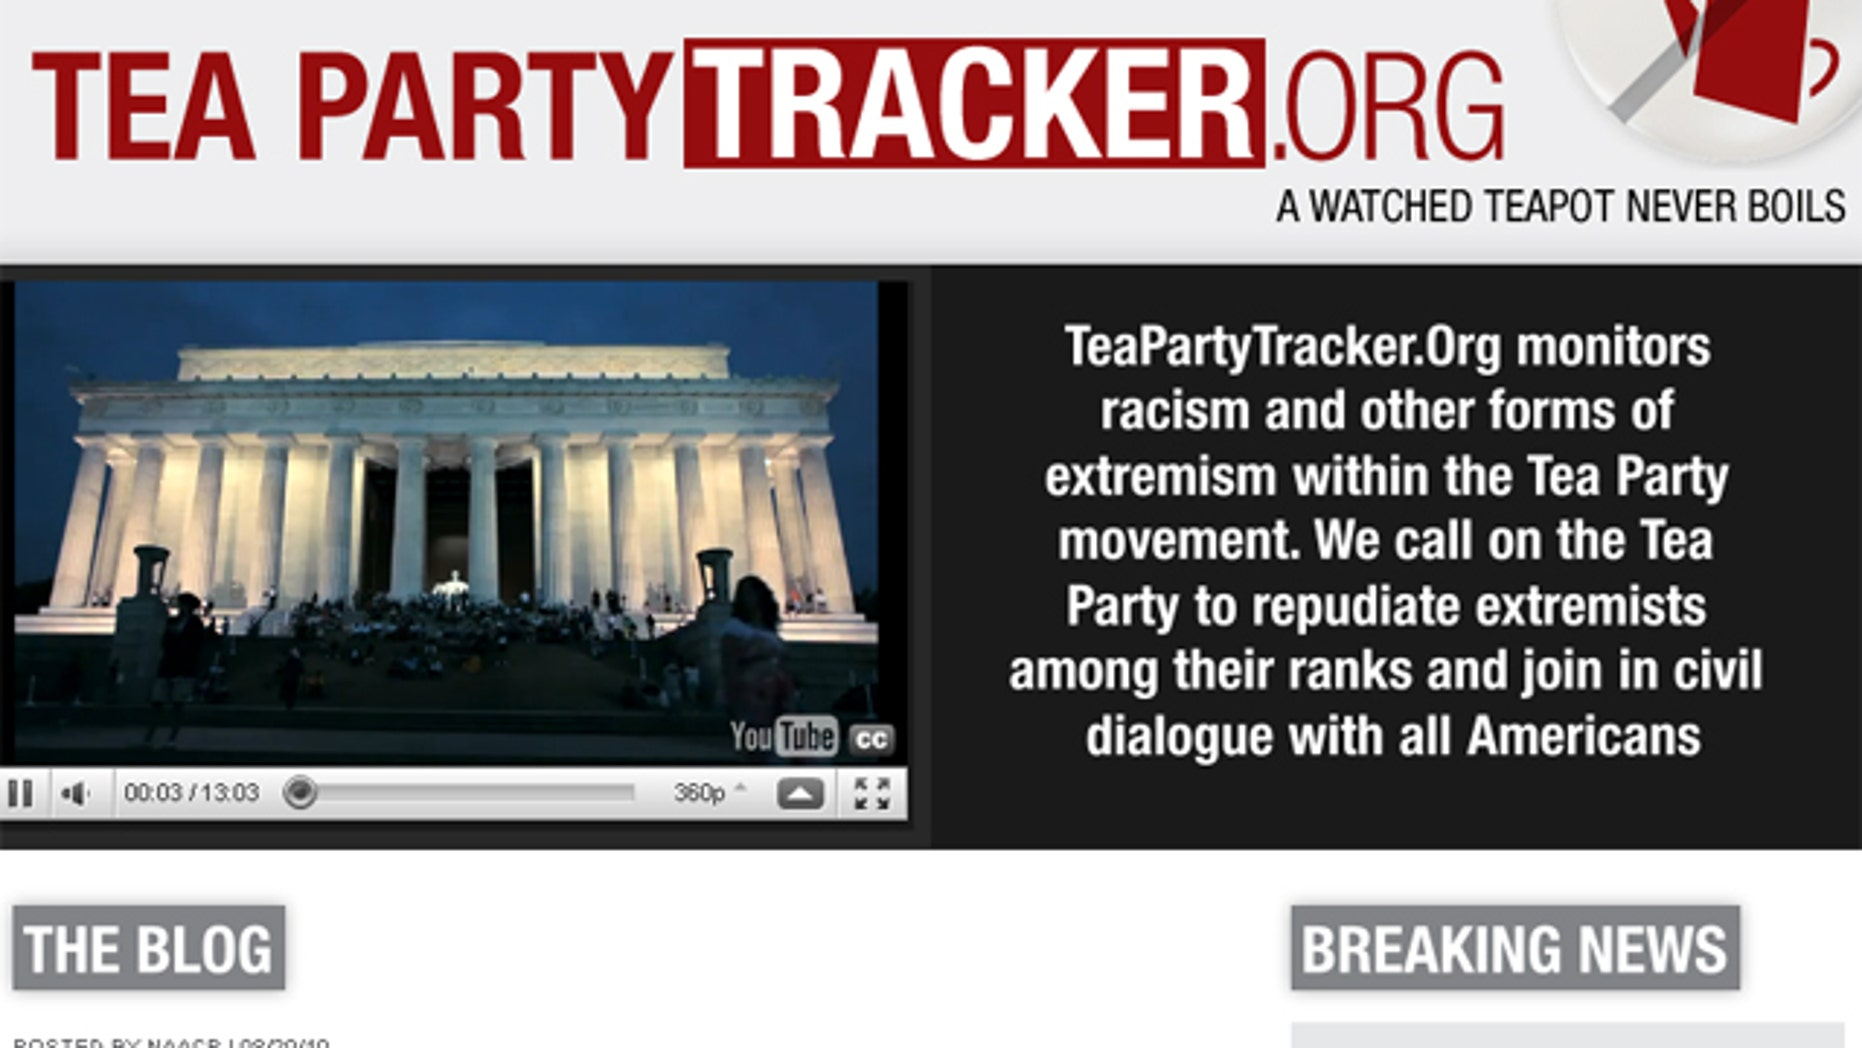 (TeaPartyTracker.org)